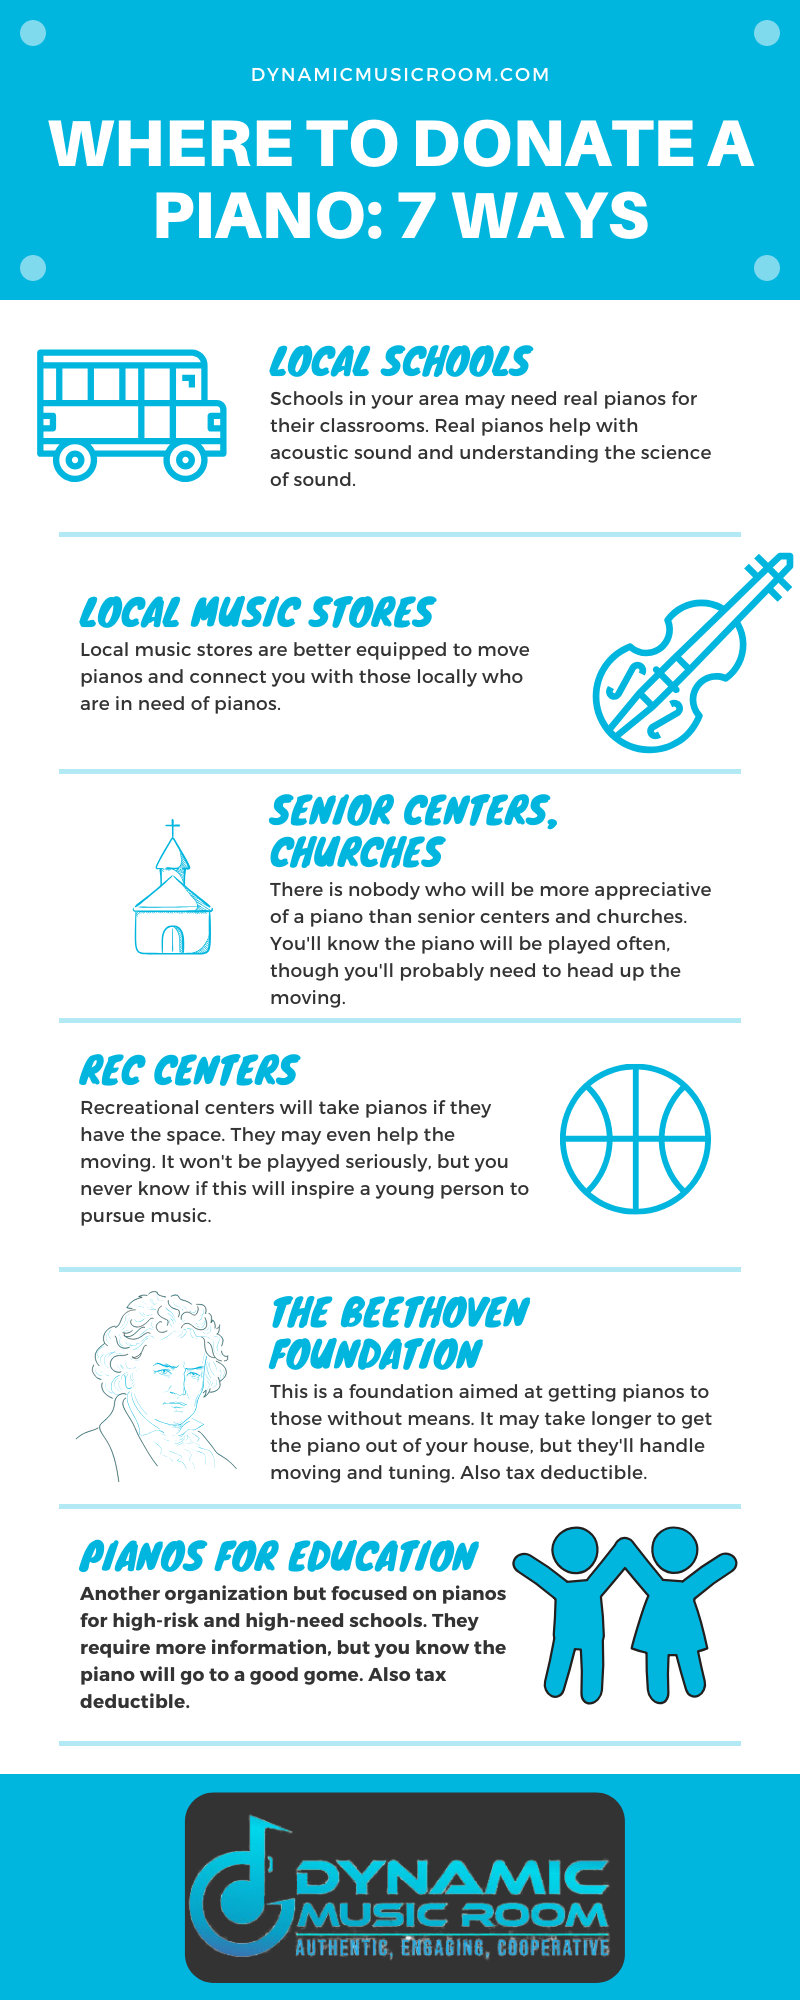 image where to donate a piano: 7 ways infographic